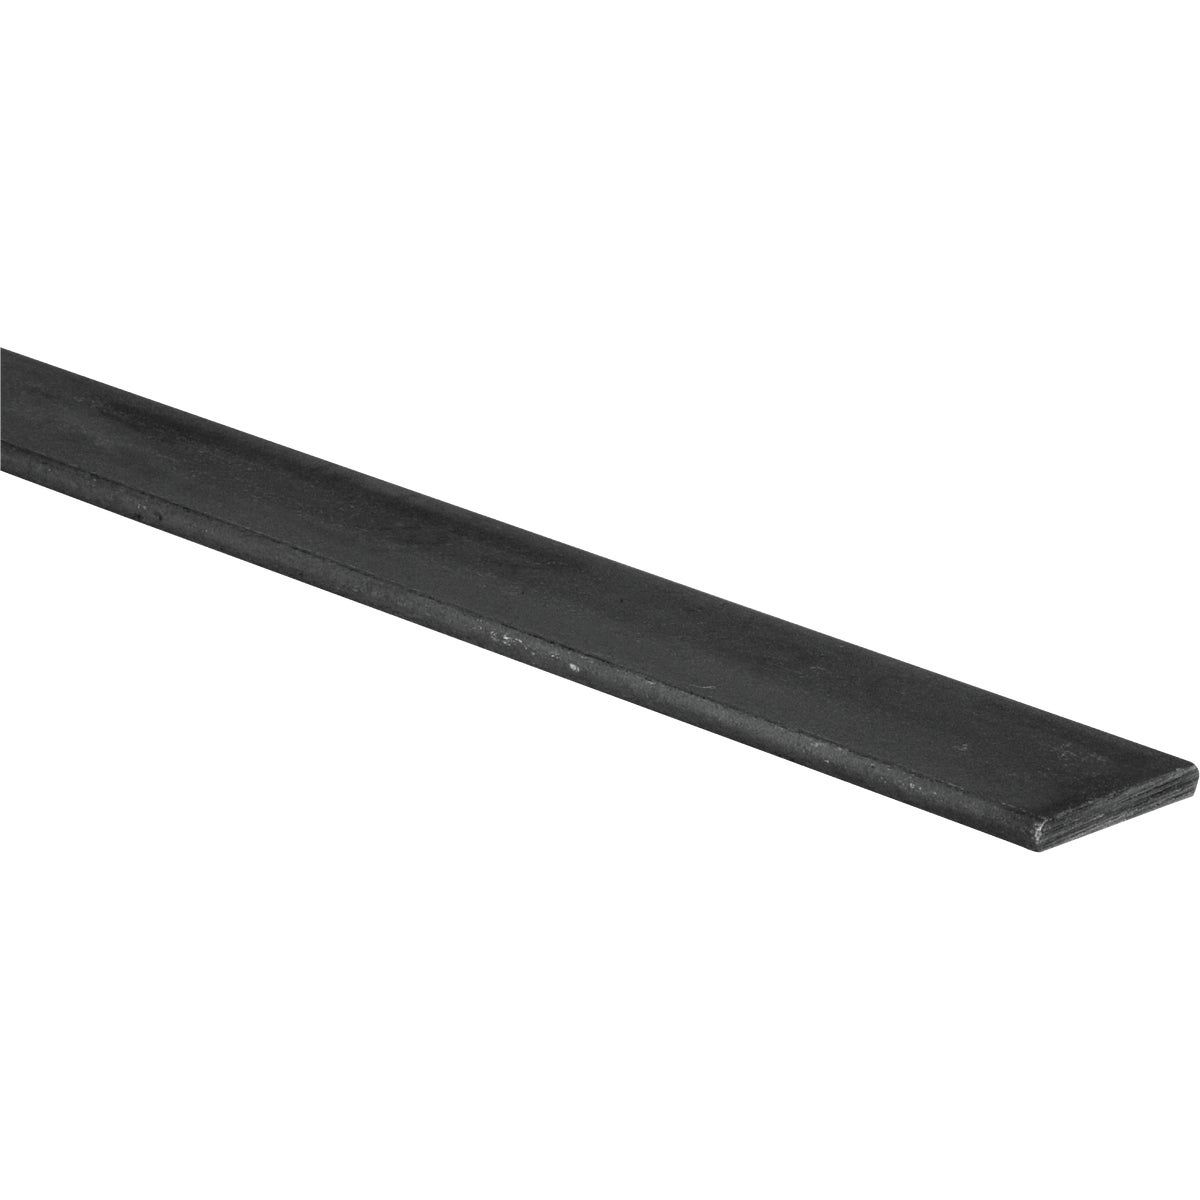 1/8X1/2X3'HR STL FLT BAR - N316158 by National Mfg Co